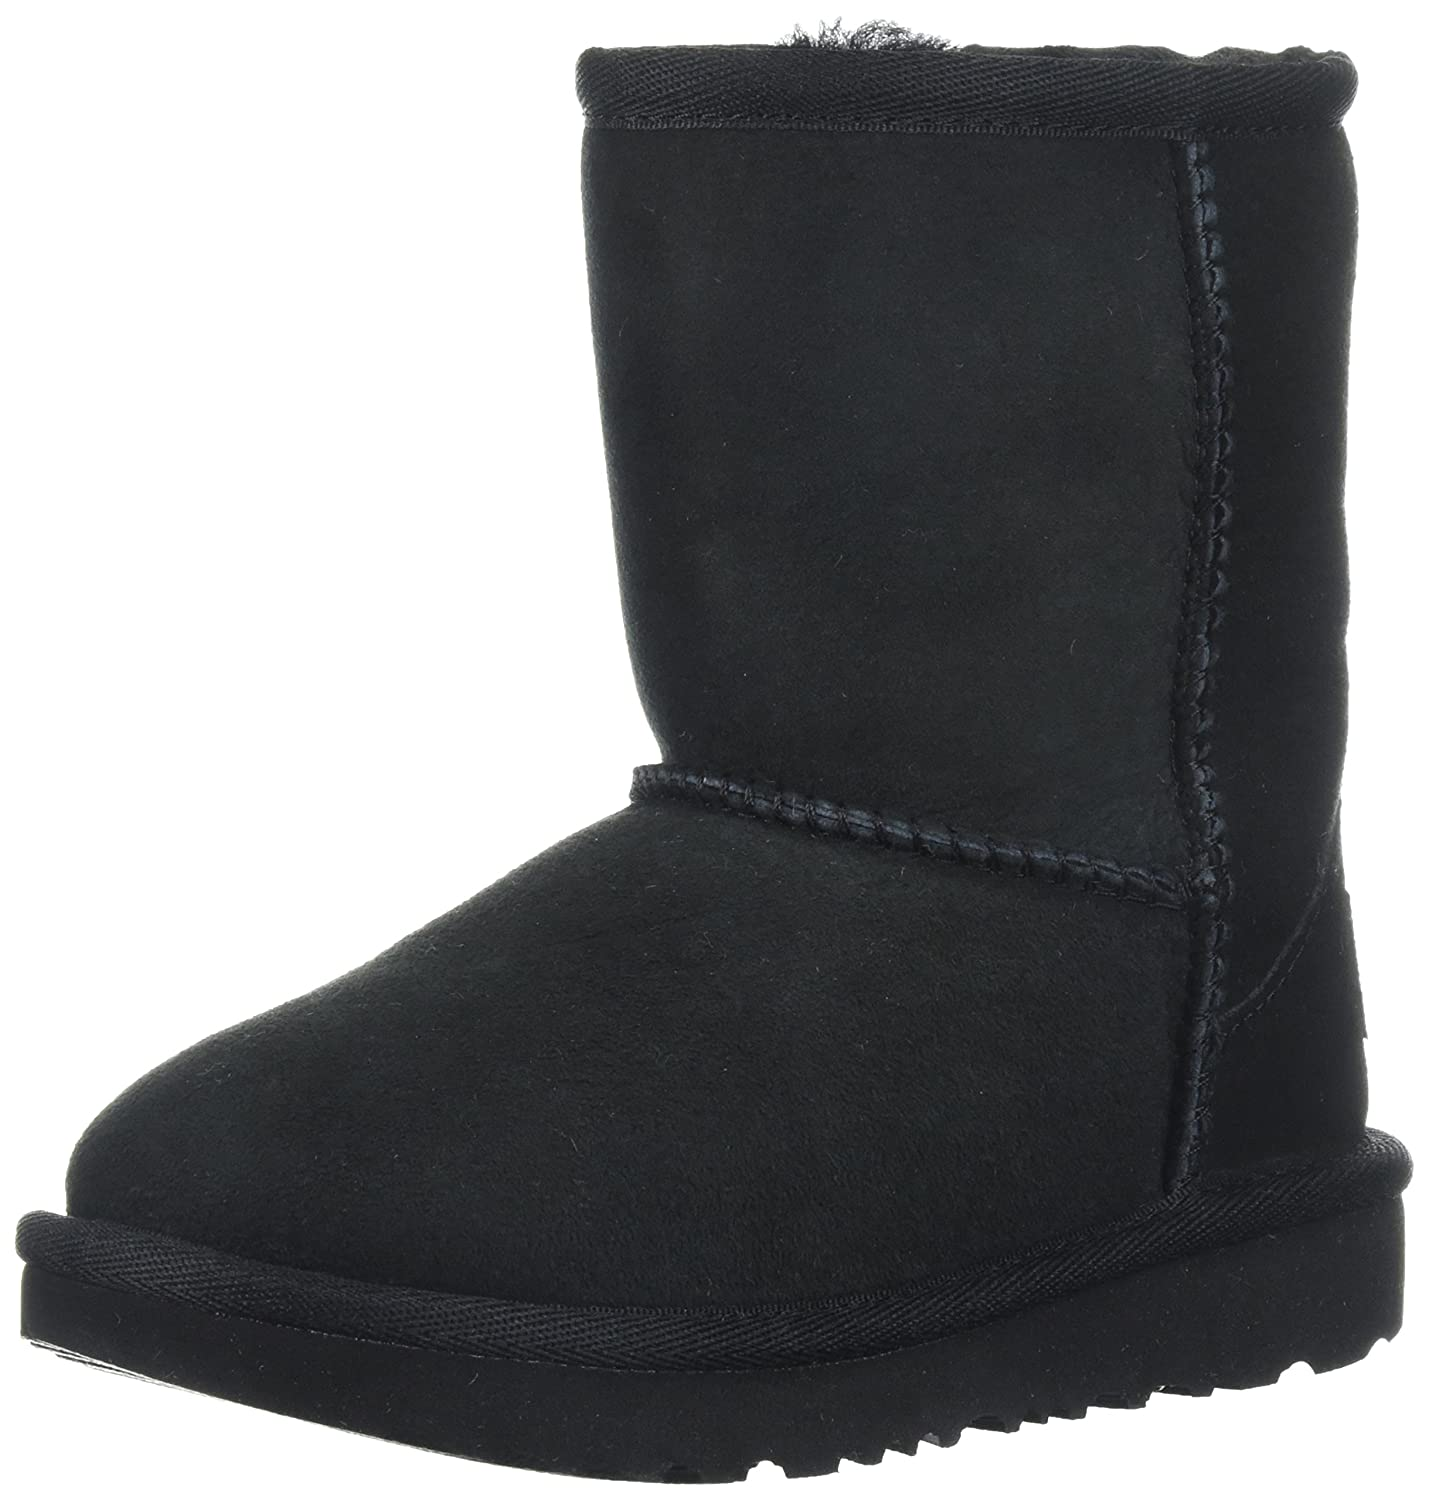 ca612fcd240 UGG Kids K Classic II Fashion Boot